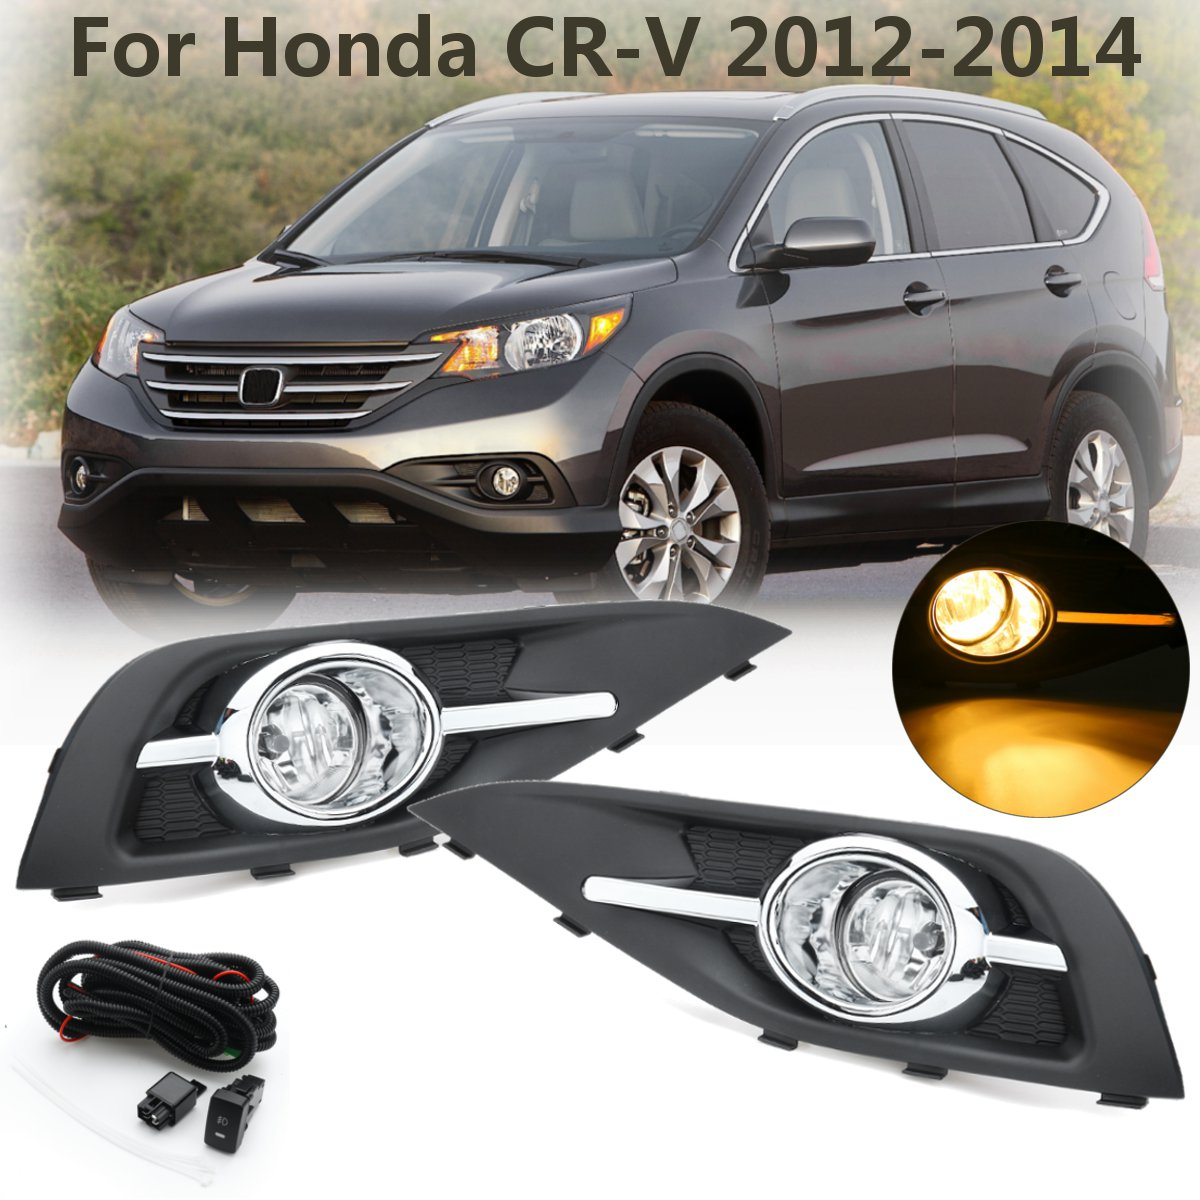 Fog Light 12V 55W 1Pair Front Left Right Bumper Fog Light Lamp Grilles w/ Harness Bulb Replacement for Honda CRV 2012~2014Fog Light 12V 55W 1Pair Front Left Right Bumper Fog Light Lamp Grilles w/ Harness Bulb Replacement for Honda CRV 2012~2014